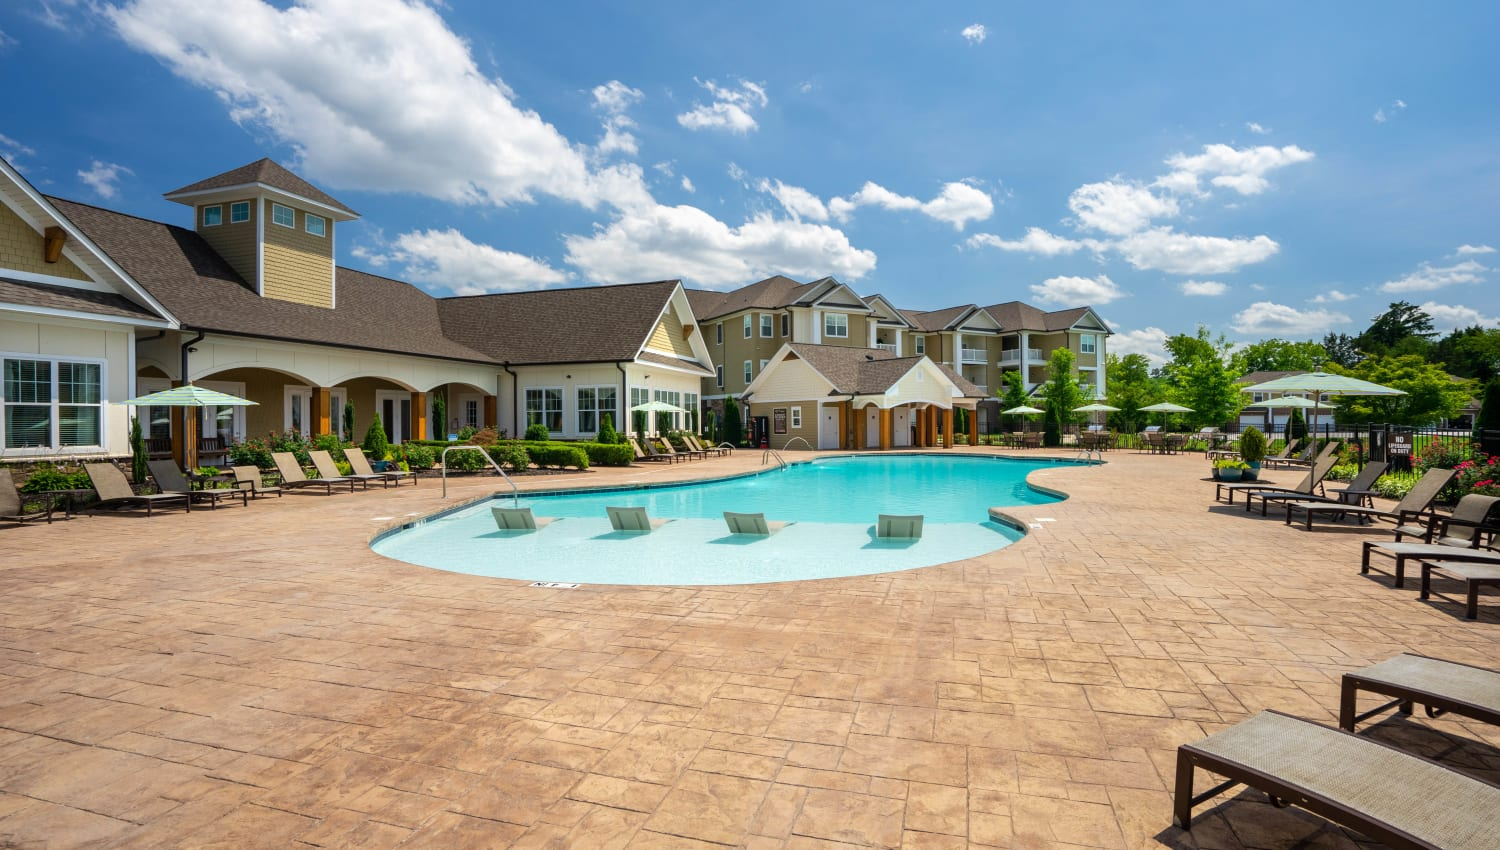 Spacious swimming pool area at Legends at White Oak in Ooltewah, Tennessee